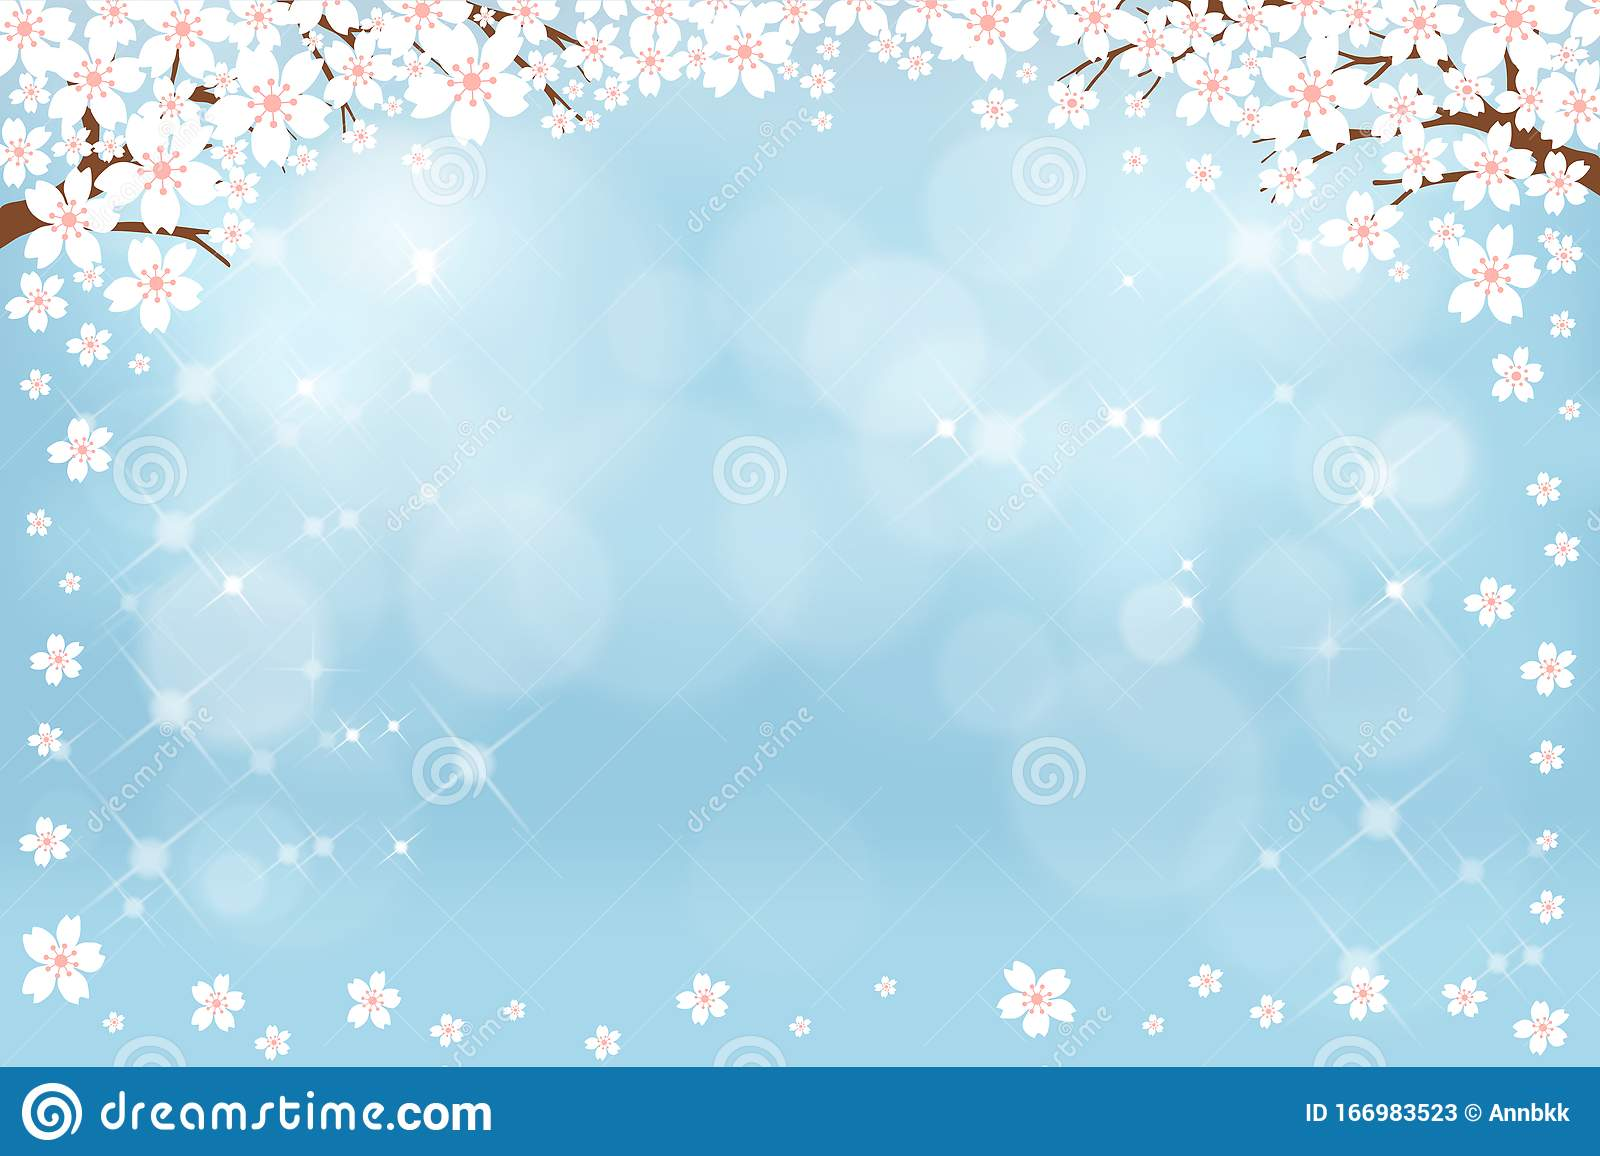 Vector Summer Nature Background With Cute White Sakura On Blue